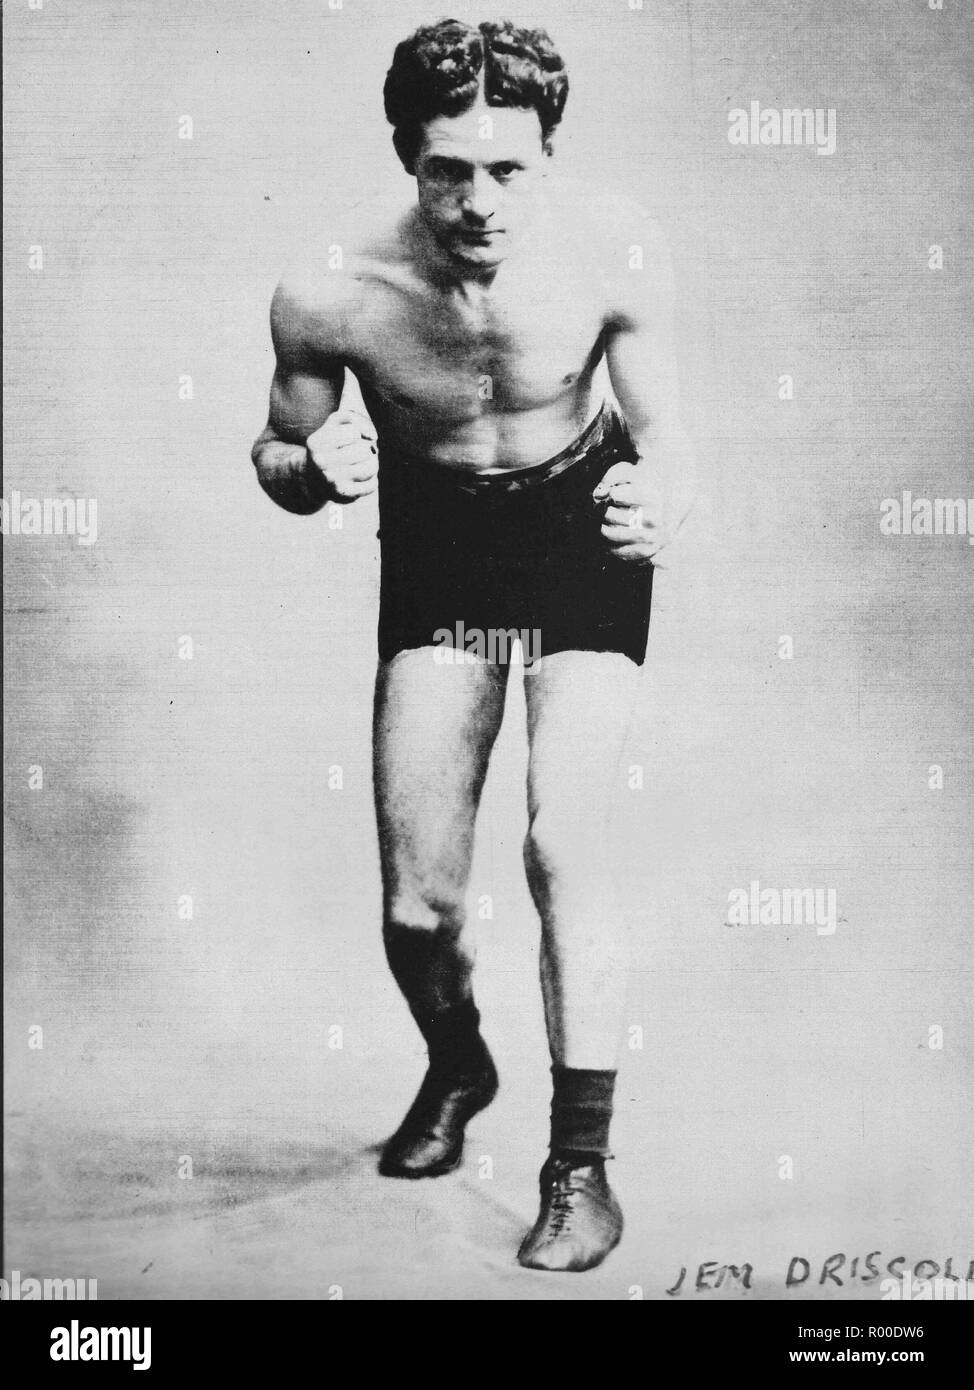 Peerless James Jim Driscoll (1880-1925) British Featherweight Champion born in Cardiff, Wales, UK, considered one of the greatest British boxers - Stock Image